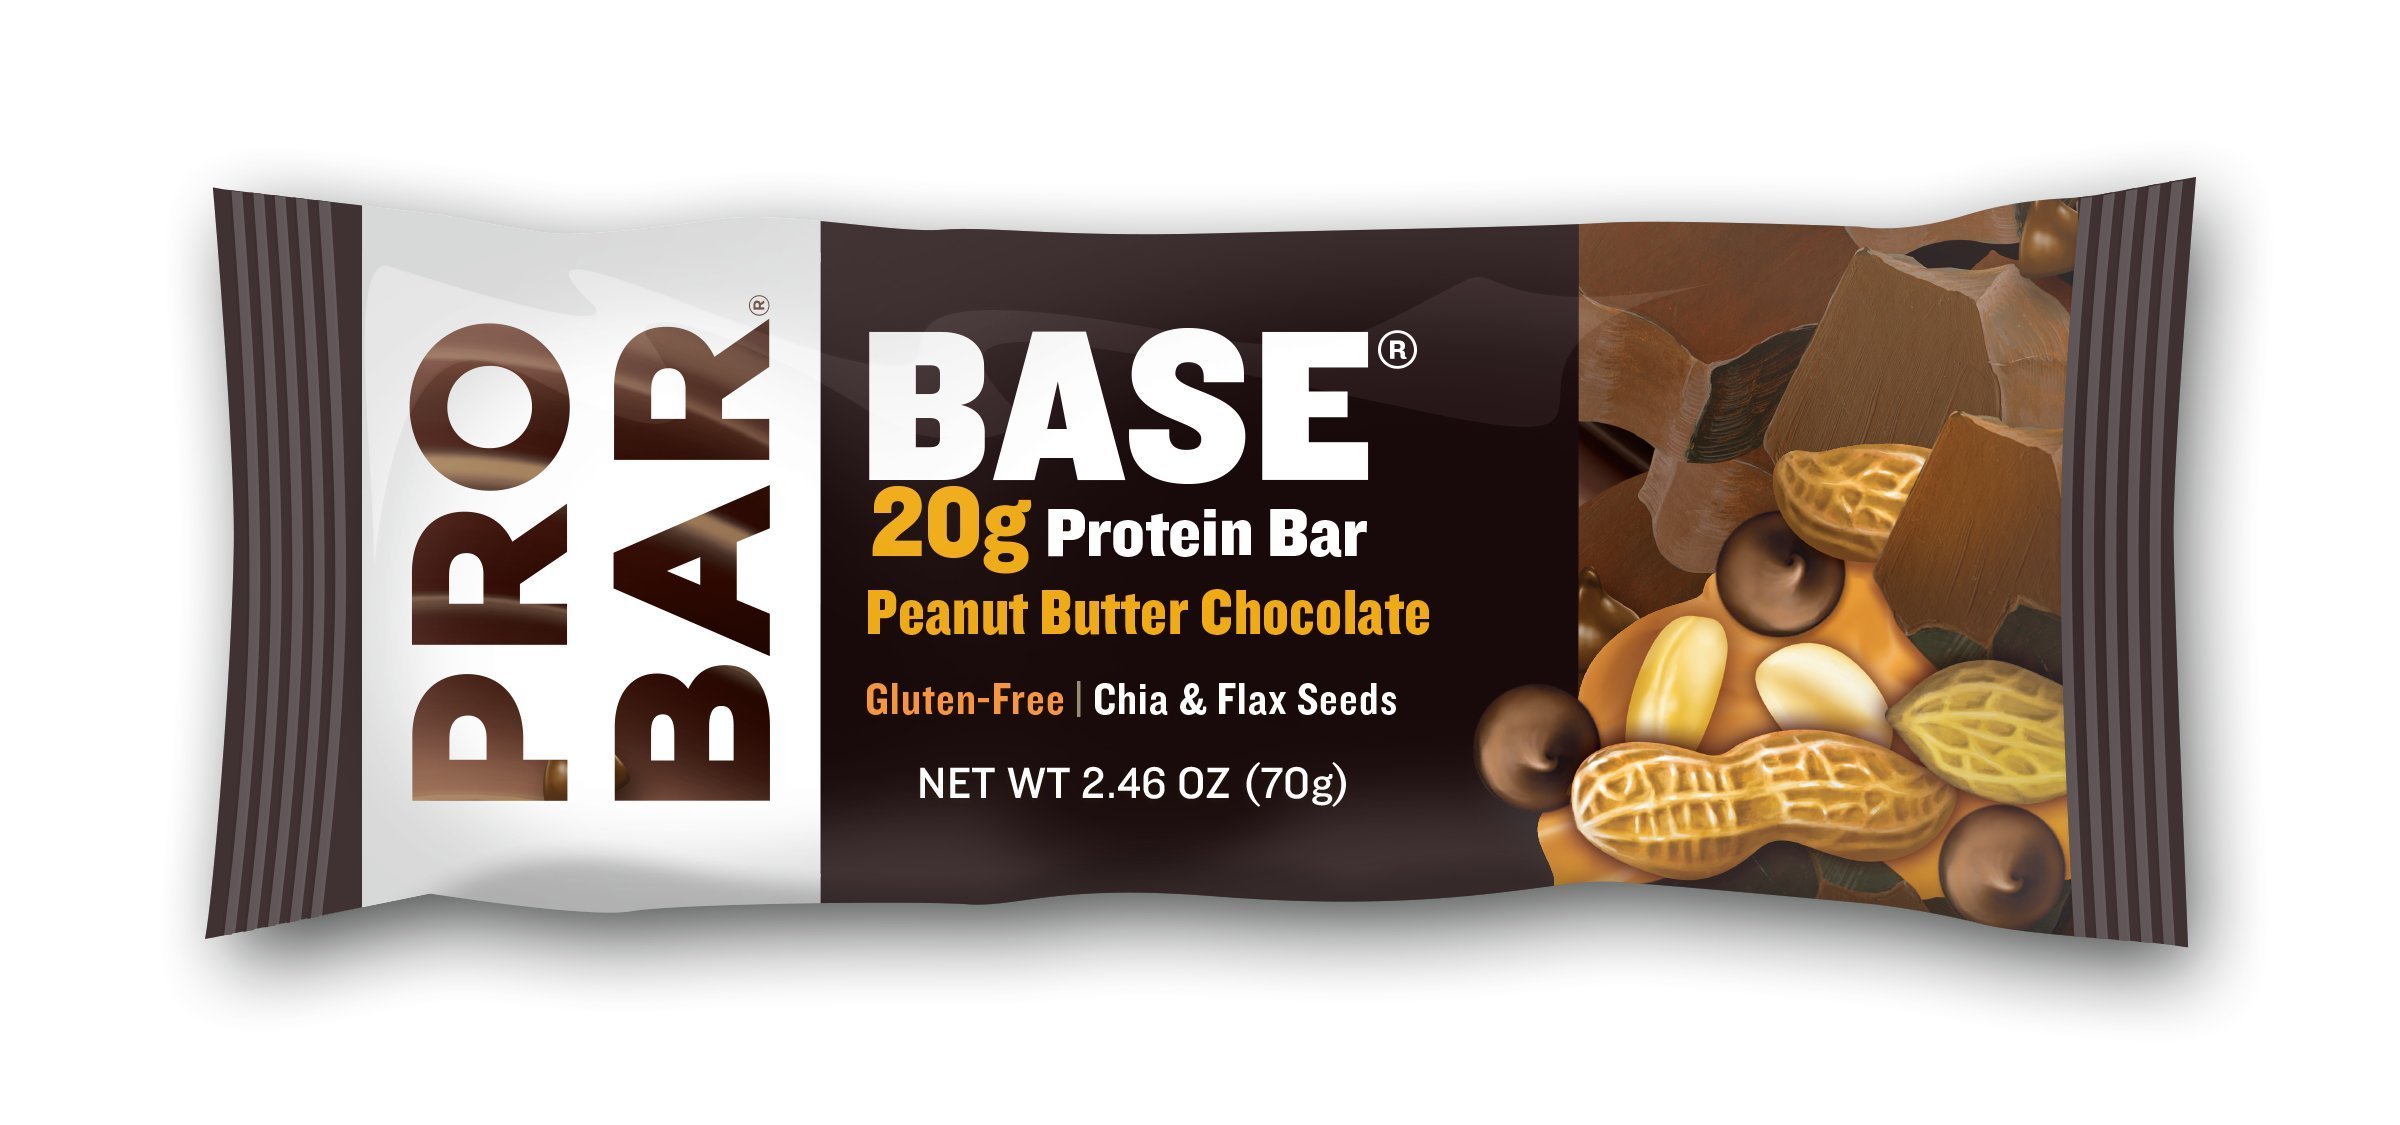 PROBAR - Base 2.46 Oz Protein Bar, Peanut Butter Chocolate, 12 Count - Organic, Gluten-Free, Plant-Based Whole Food Ingredients by Probar